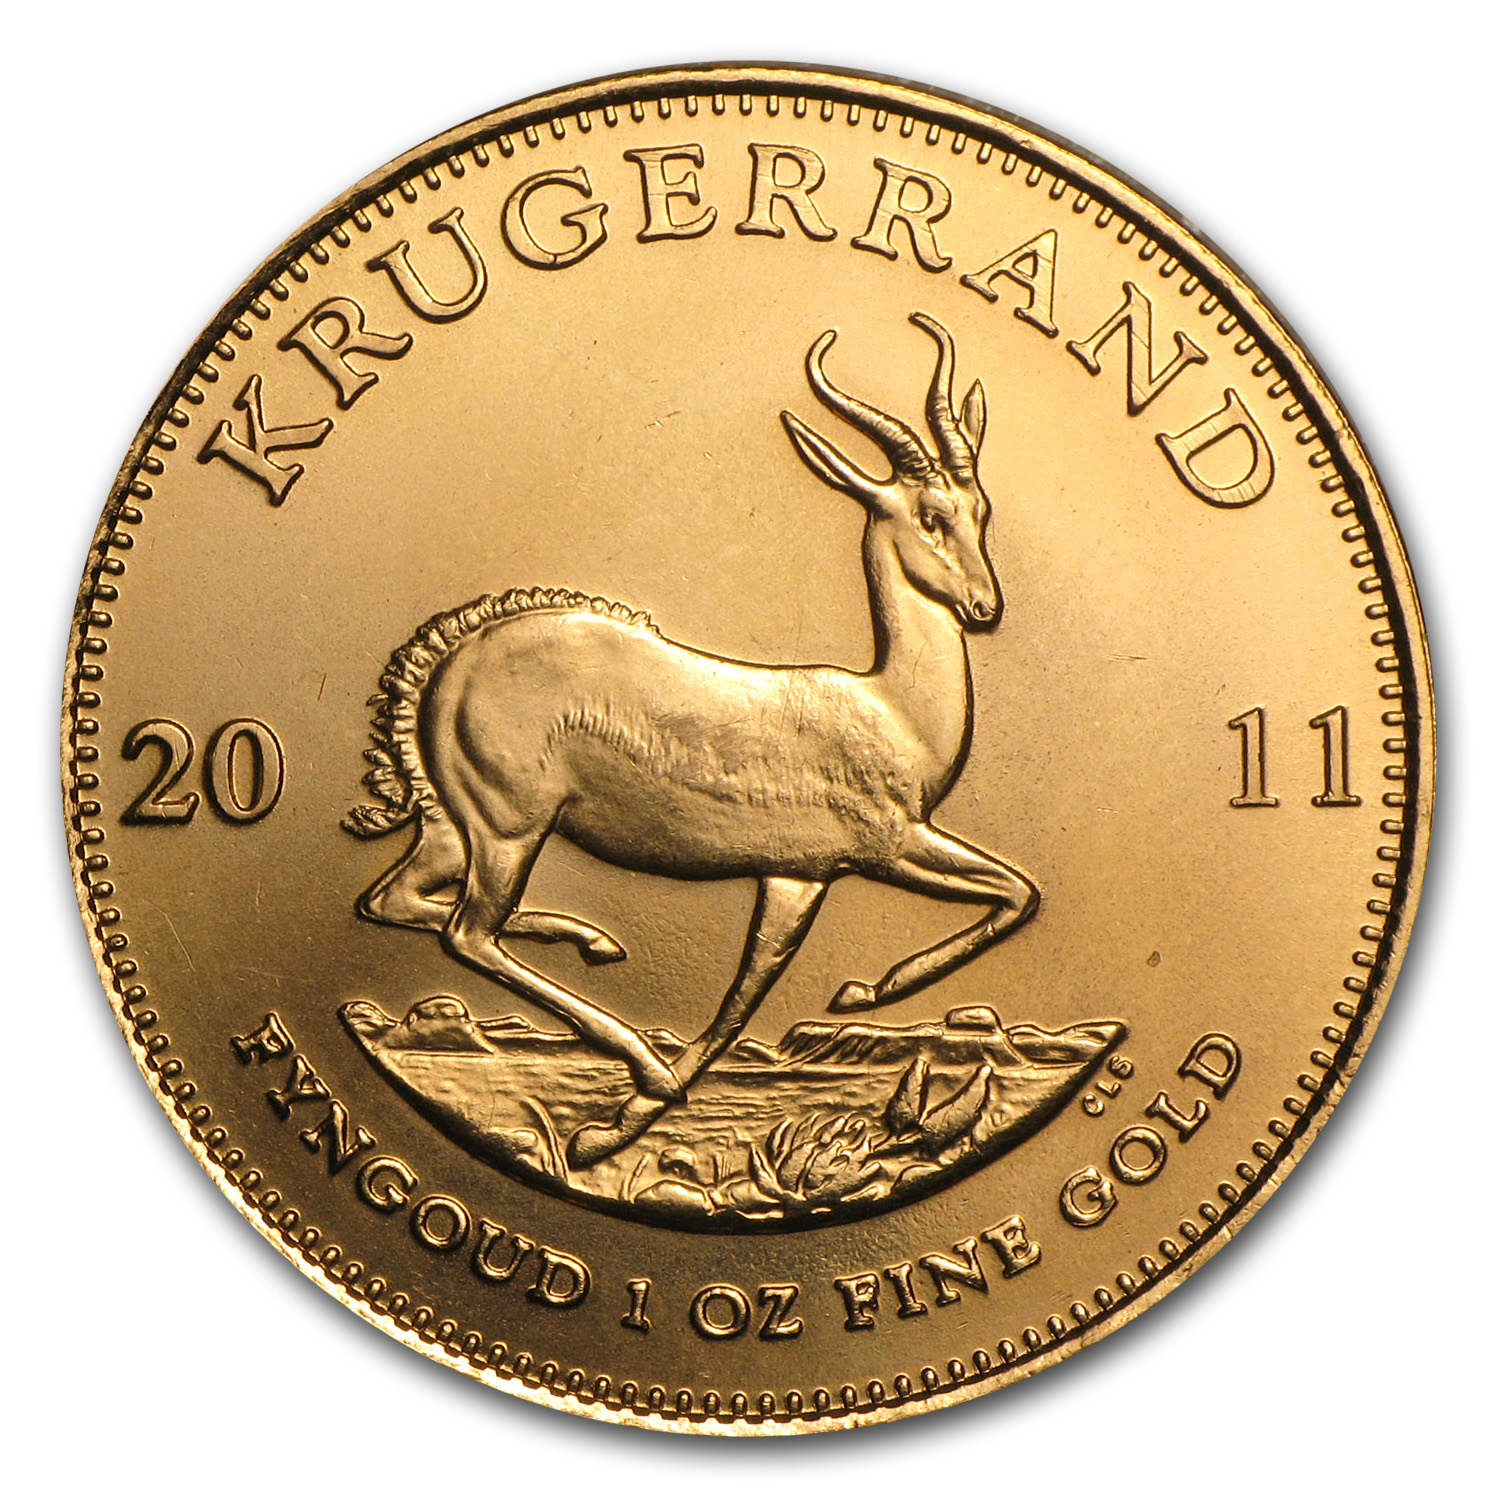 2011 South Africa 1 oz Gold Krugerrand